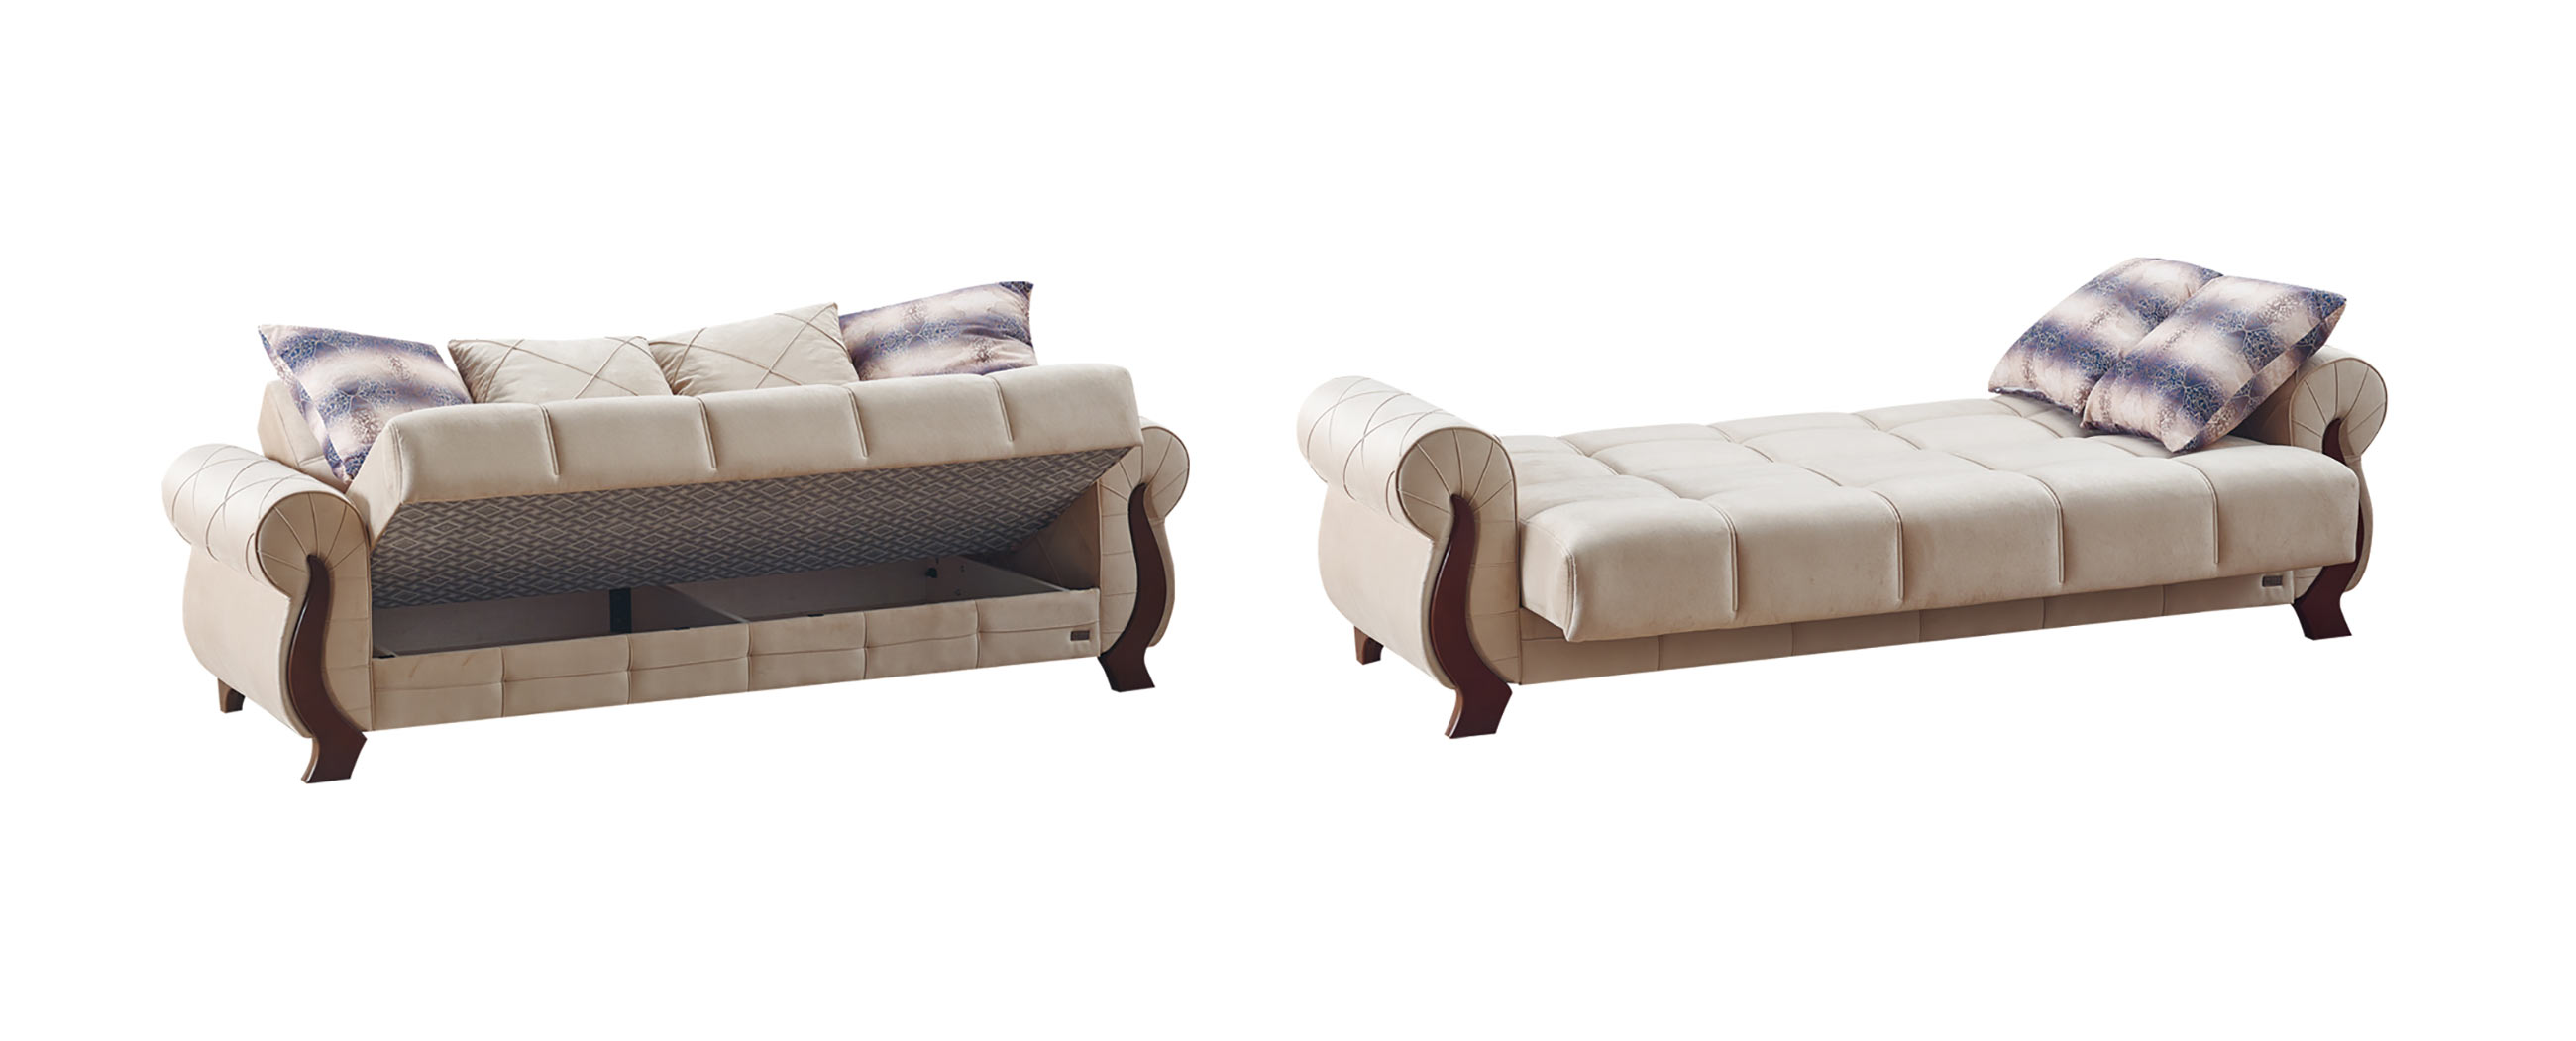 Ontario beige fabric sofa bed by empire furniture usa for Sectional sofas ontario canada